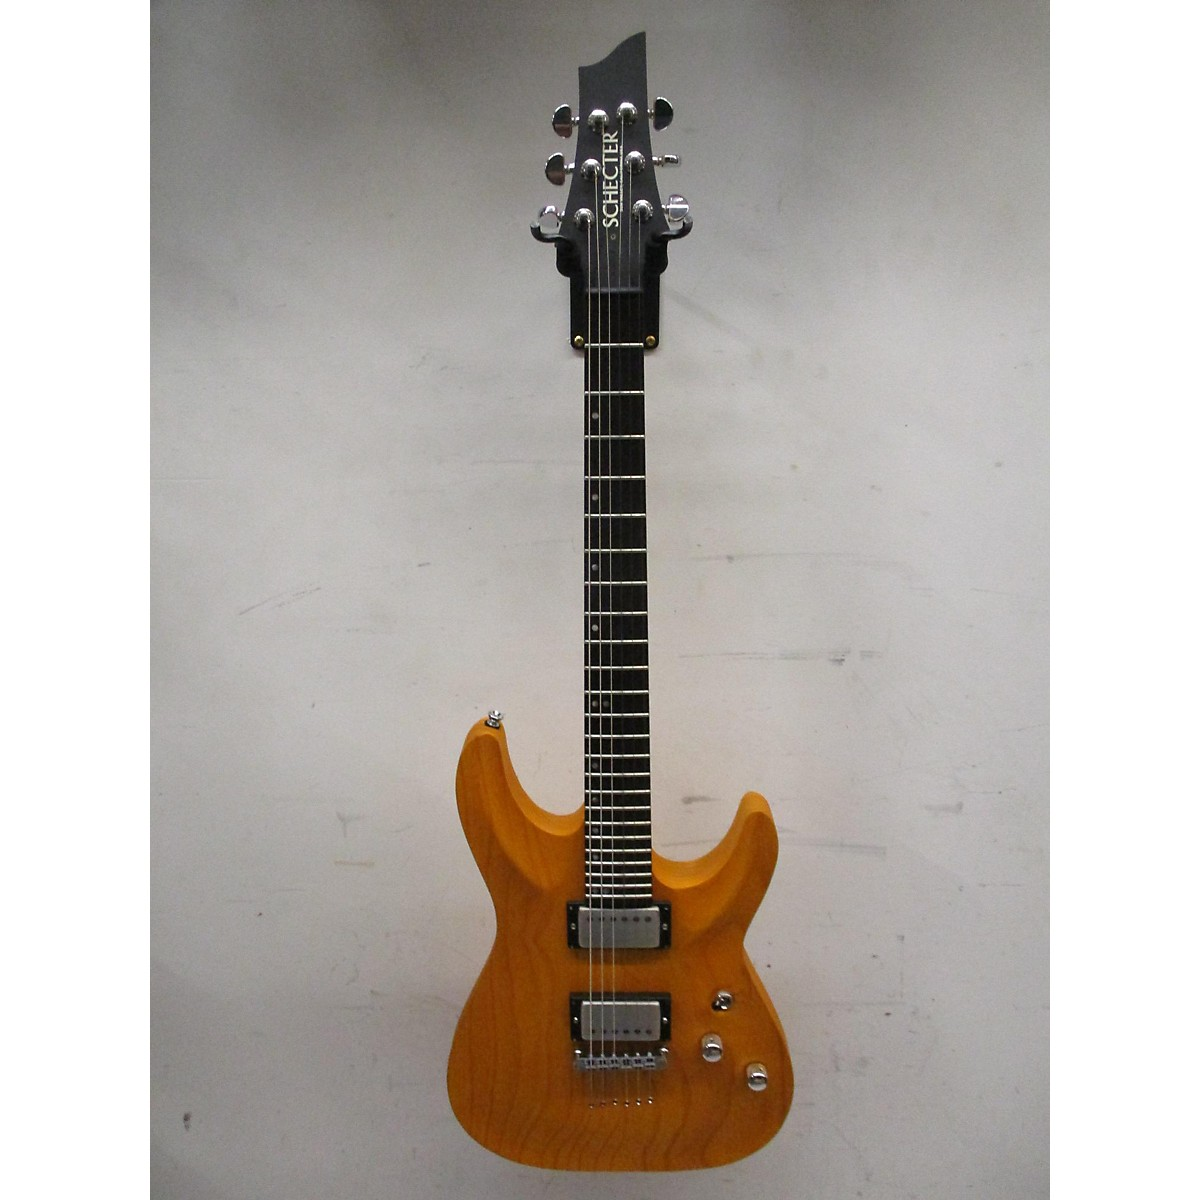 Schecter Guitar Research USA Hollywood Classic Solid Body Electric Guitar